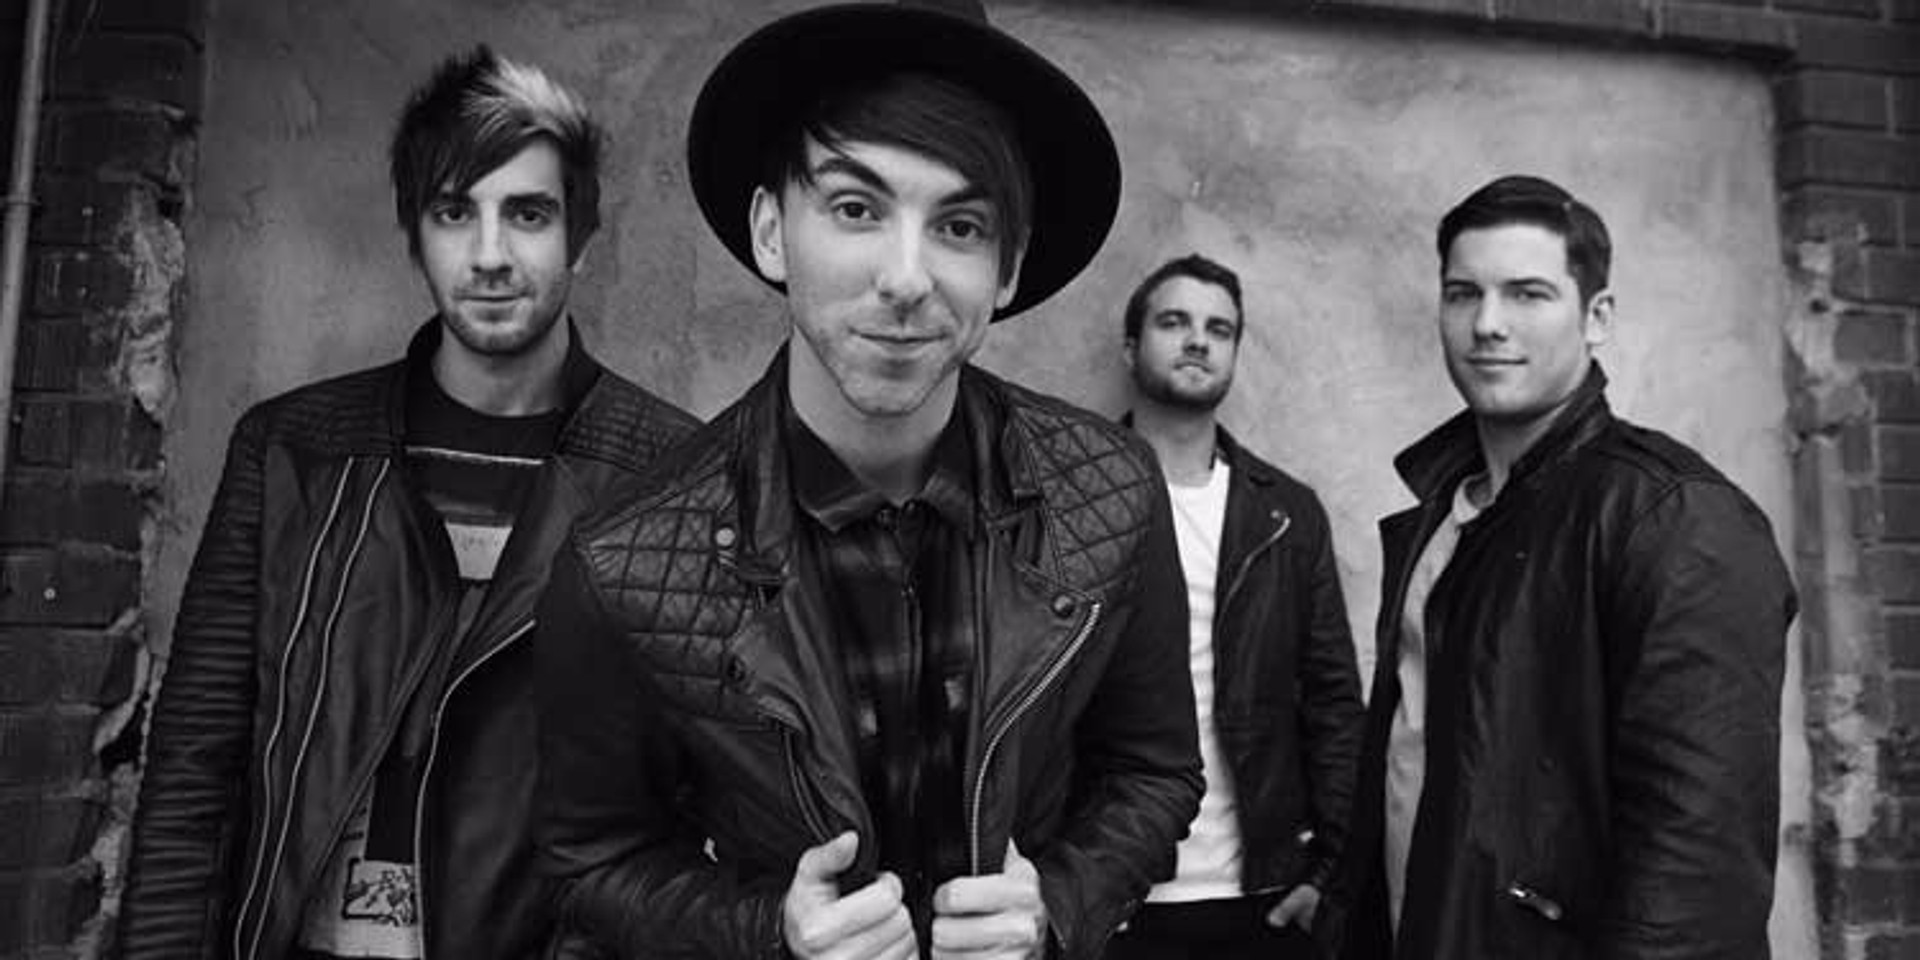 All Time Low returns to Manila for headlining concert in August